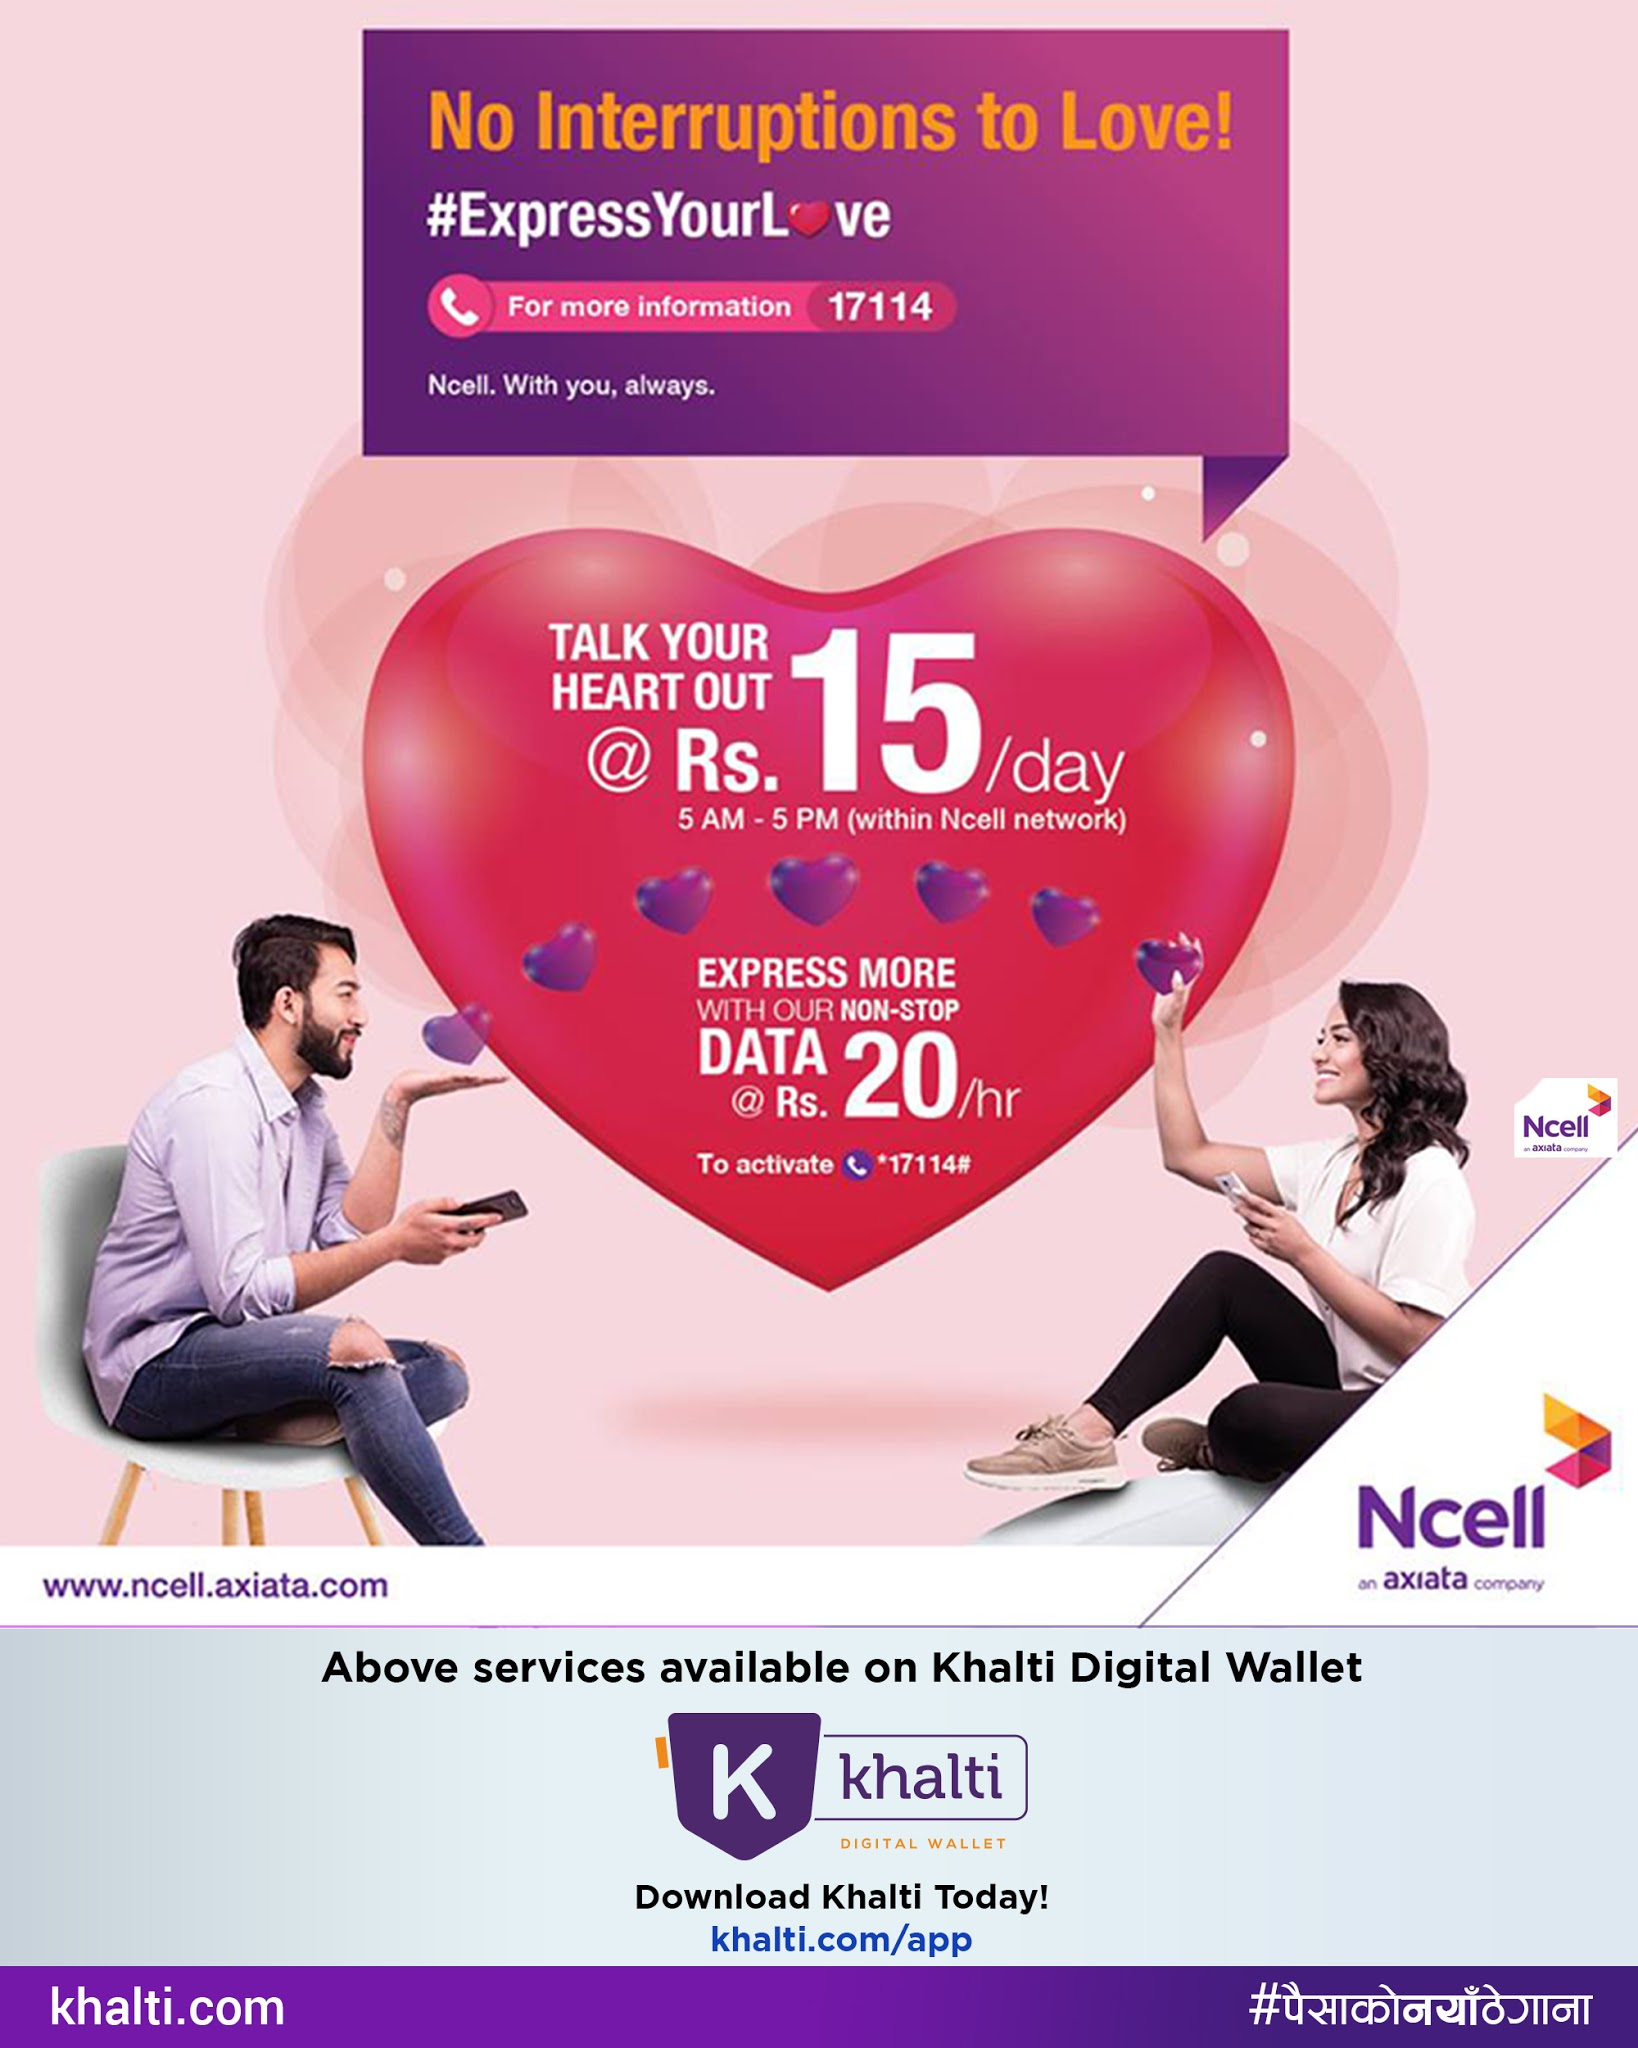 Dear Lovebirds, here is what Ncell is offering you this month of valentine